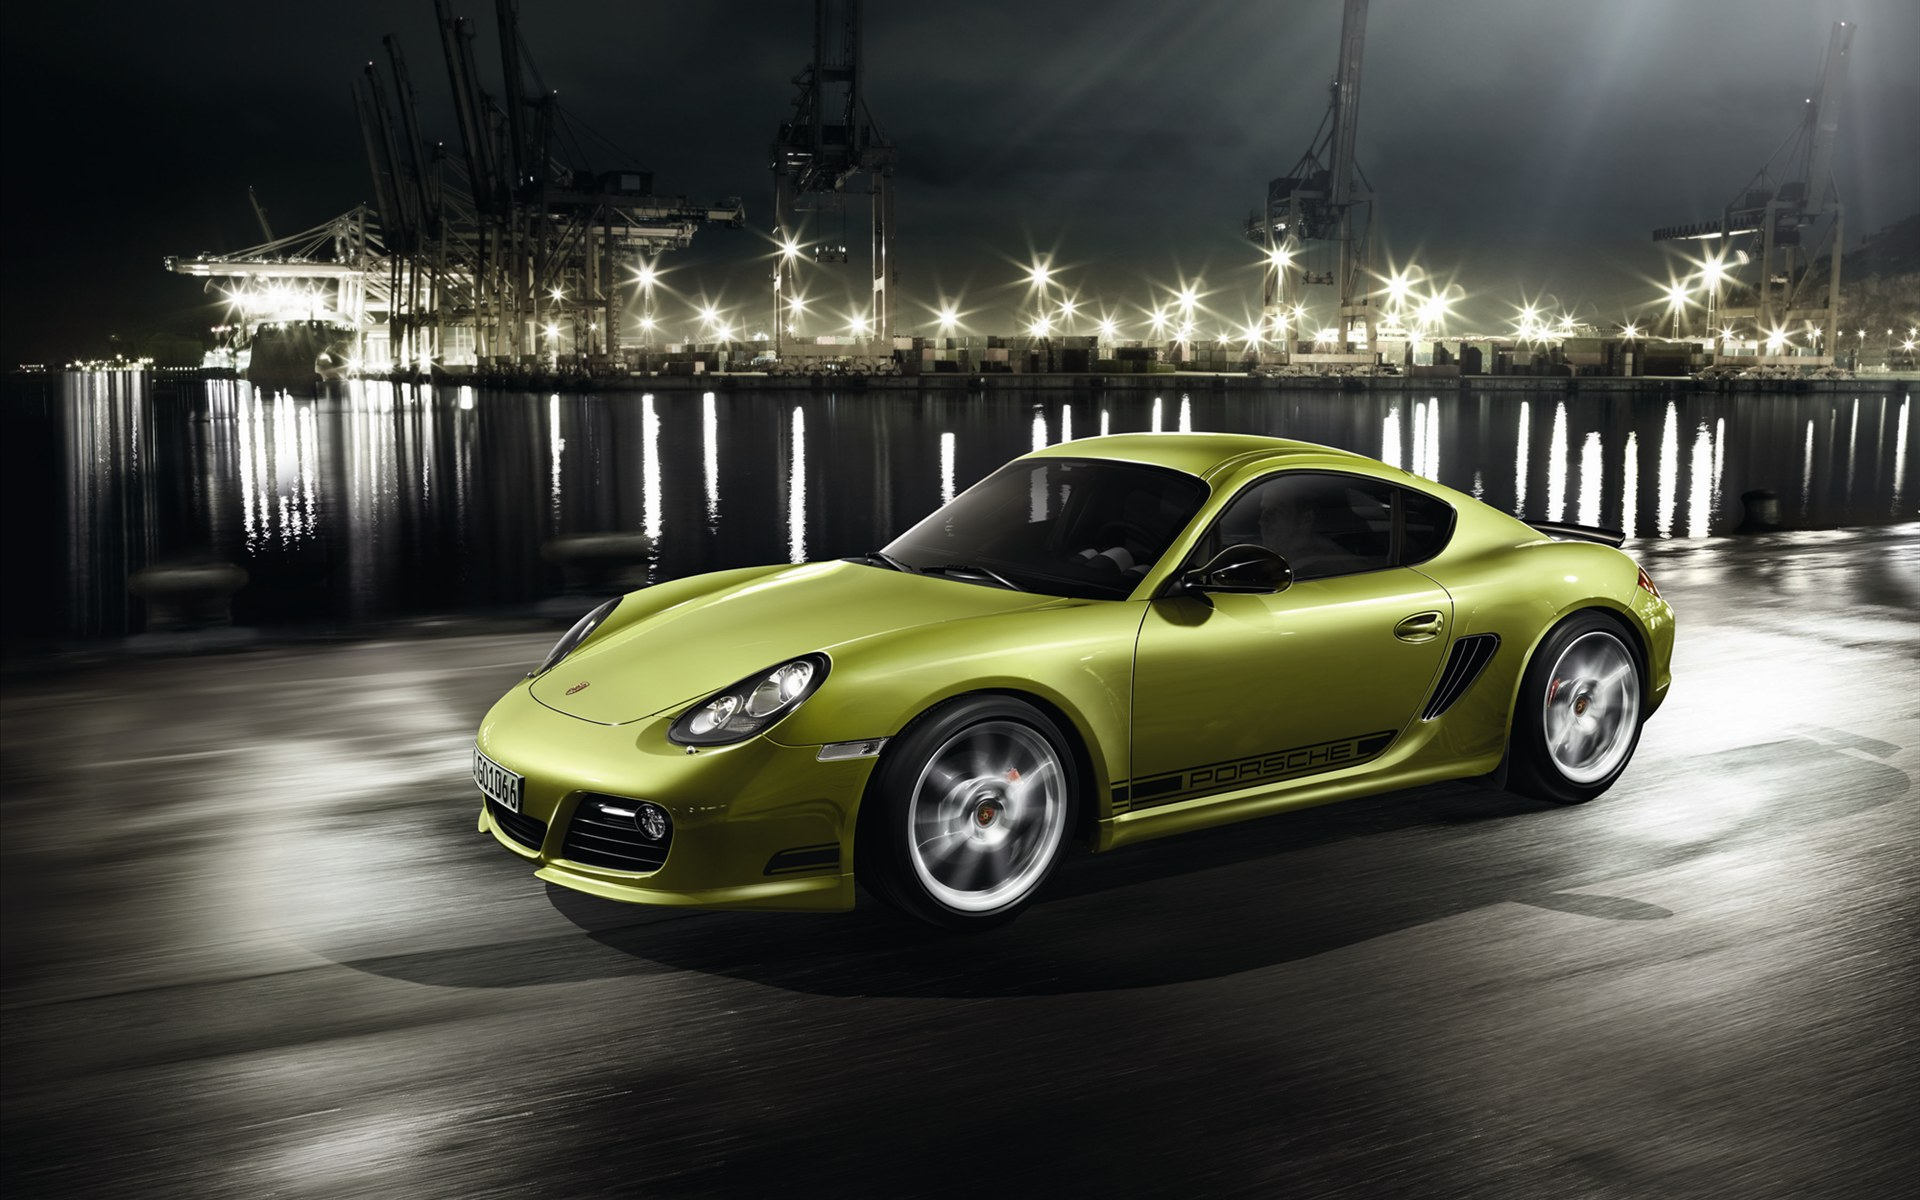 click to free download the wallpaper--Pics of Cars - Porsche Cayman Post in Pixel of 1920x1200, Green Car in Fast Speed, Shinning Lights All Around It 1920X1200 free wallpaper download